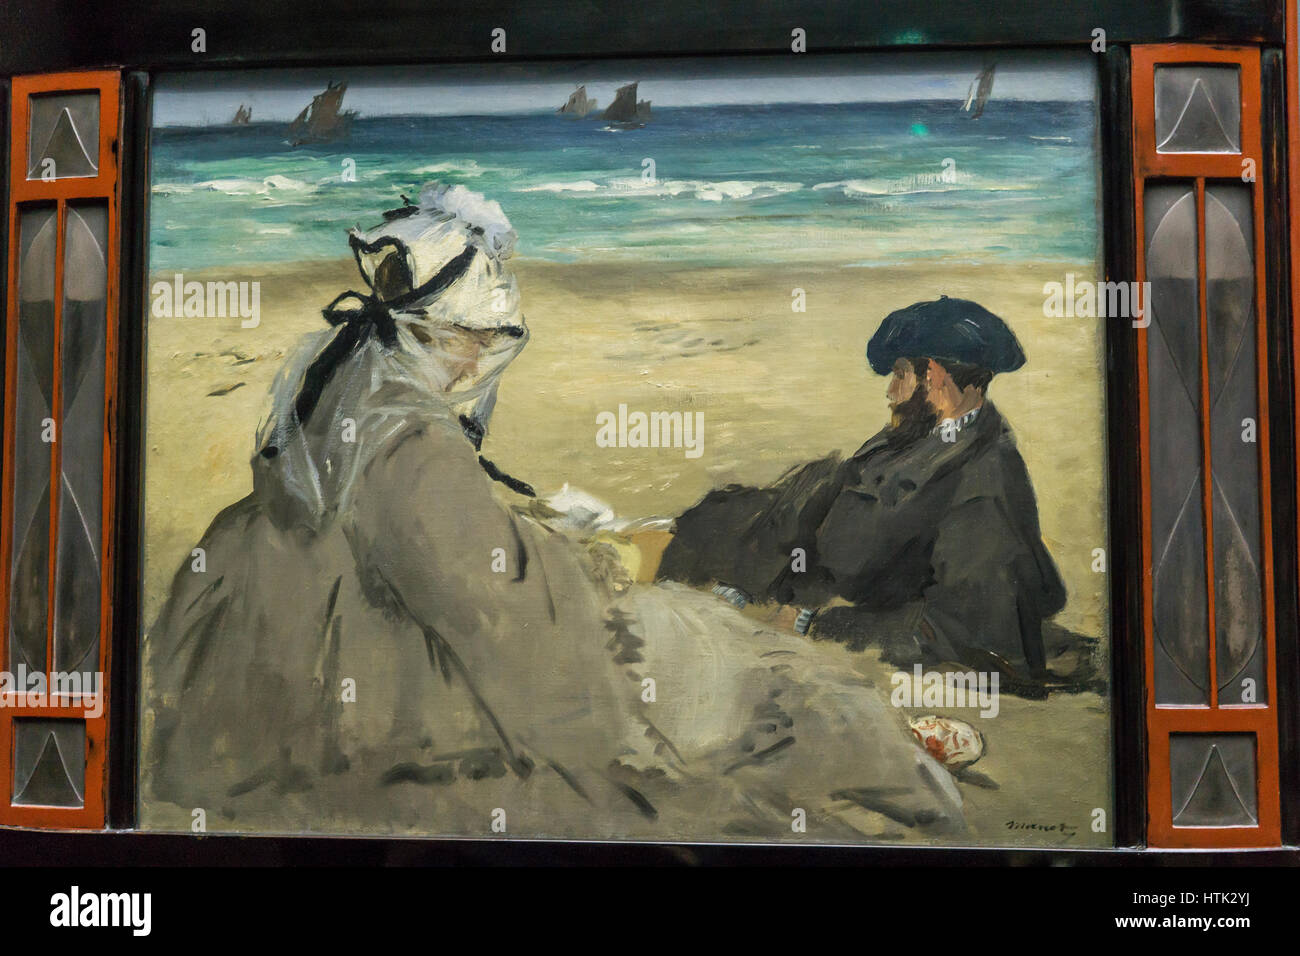 Impressionist painting at the Musee d'Orsay,Claude Monet, Paris, France. - Stock Image